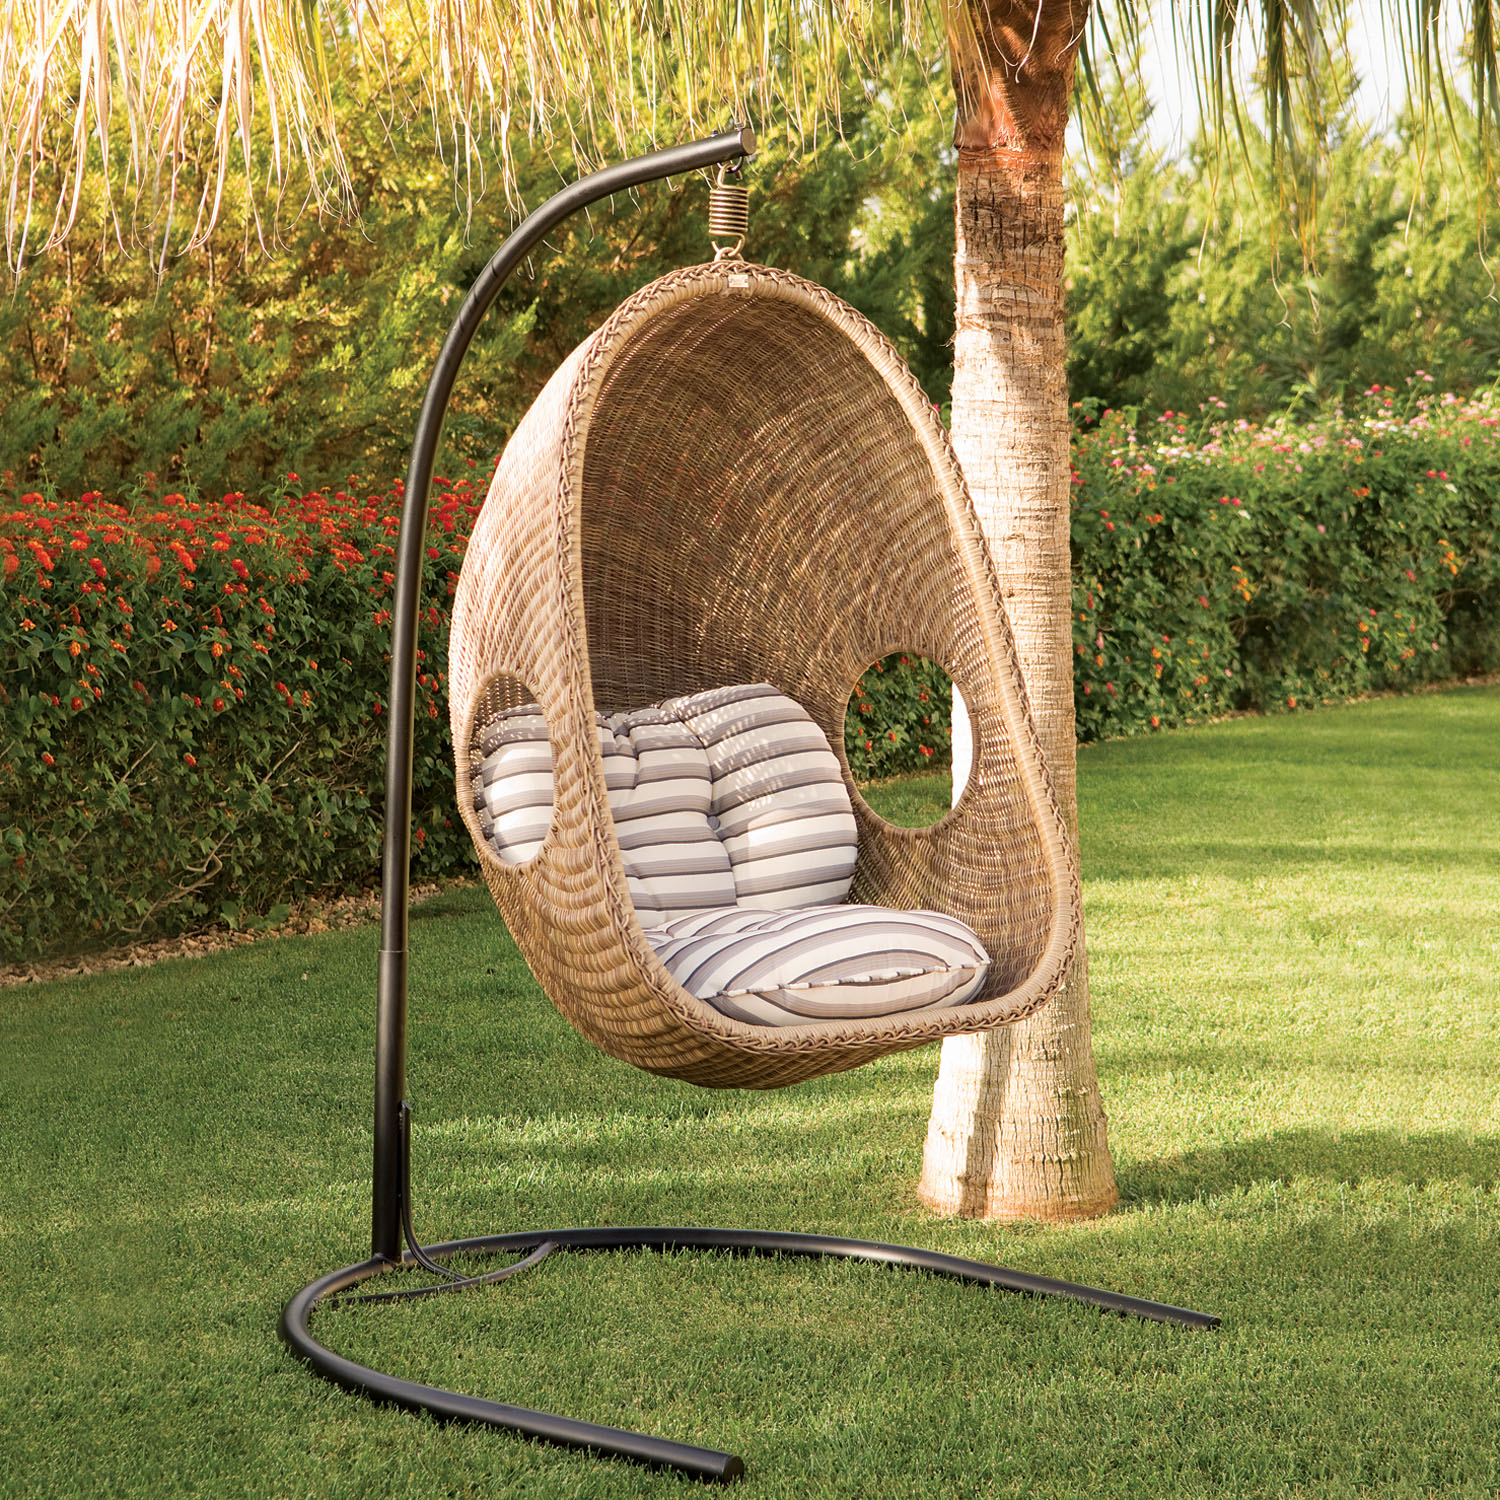 Hanging Rattan Chair Sublime Coziness With Hanging Wicker Chairs Rattan And